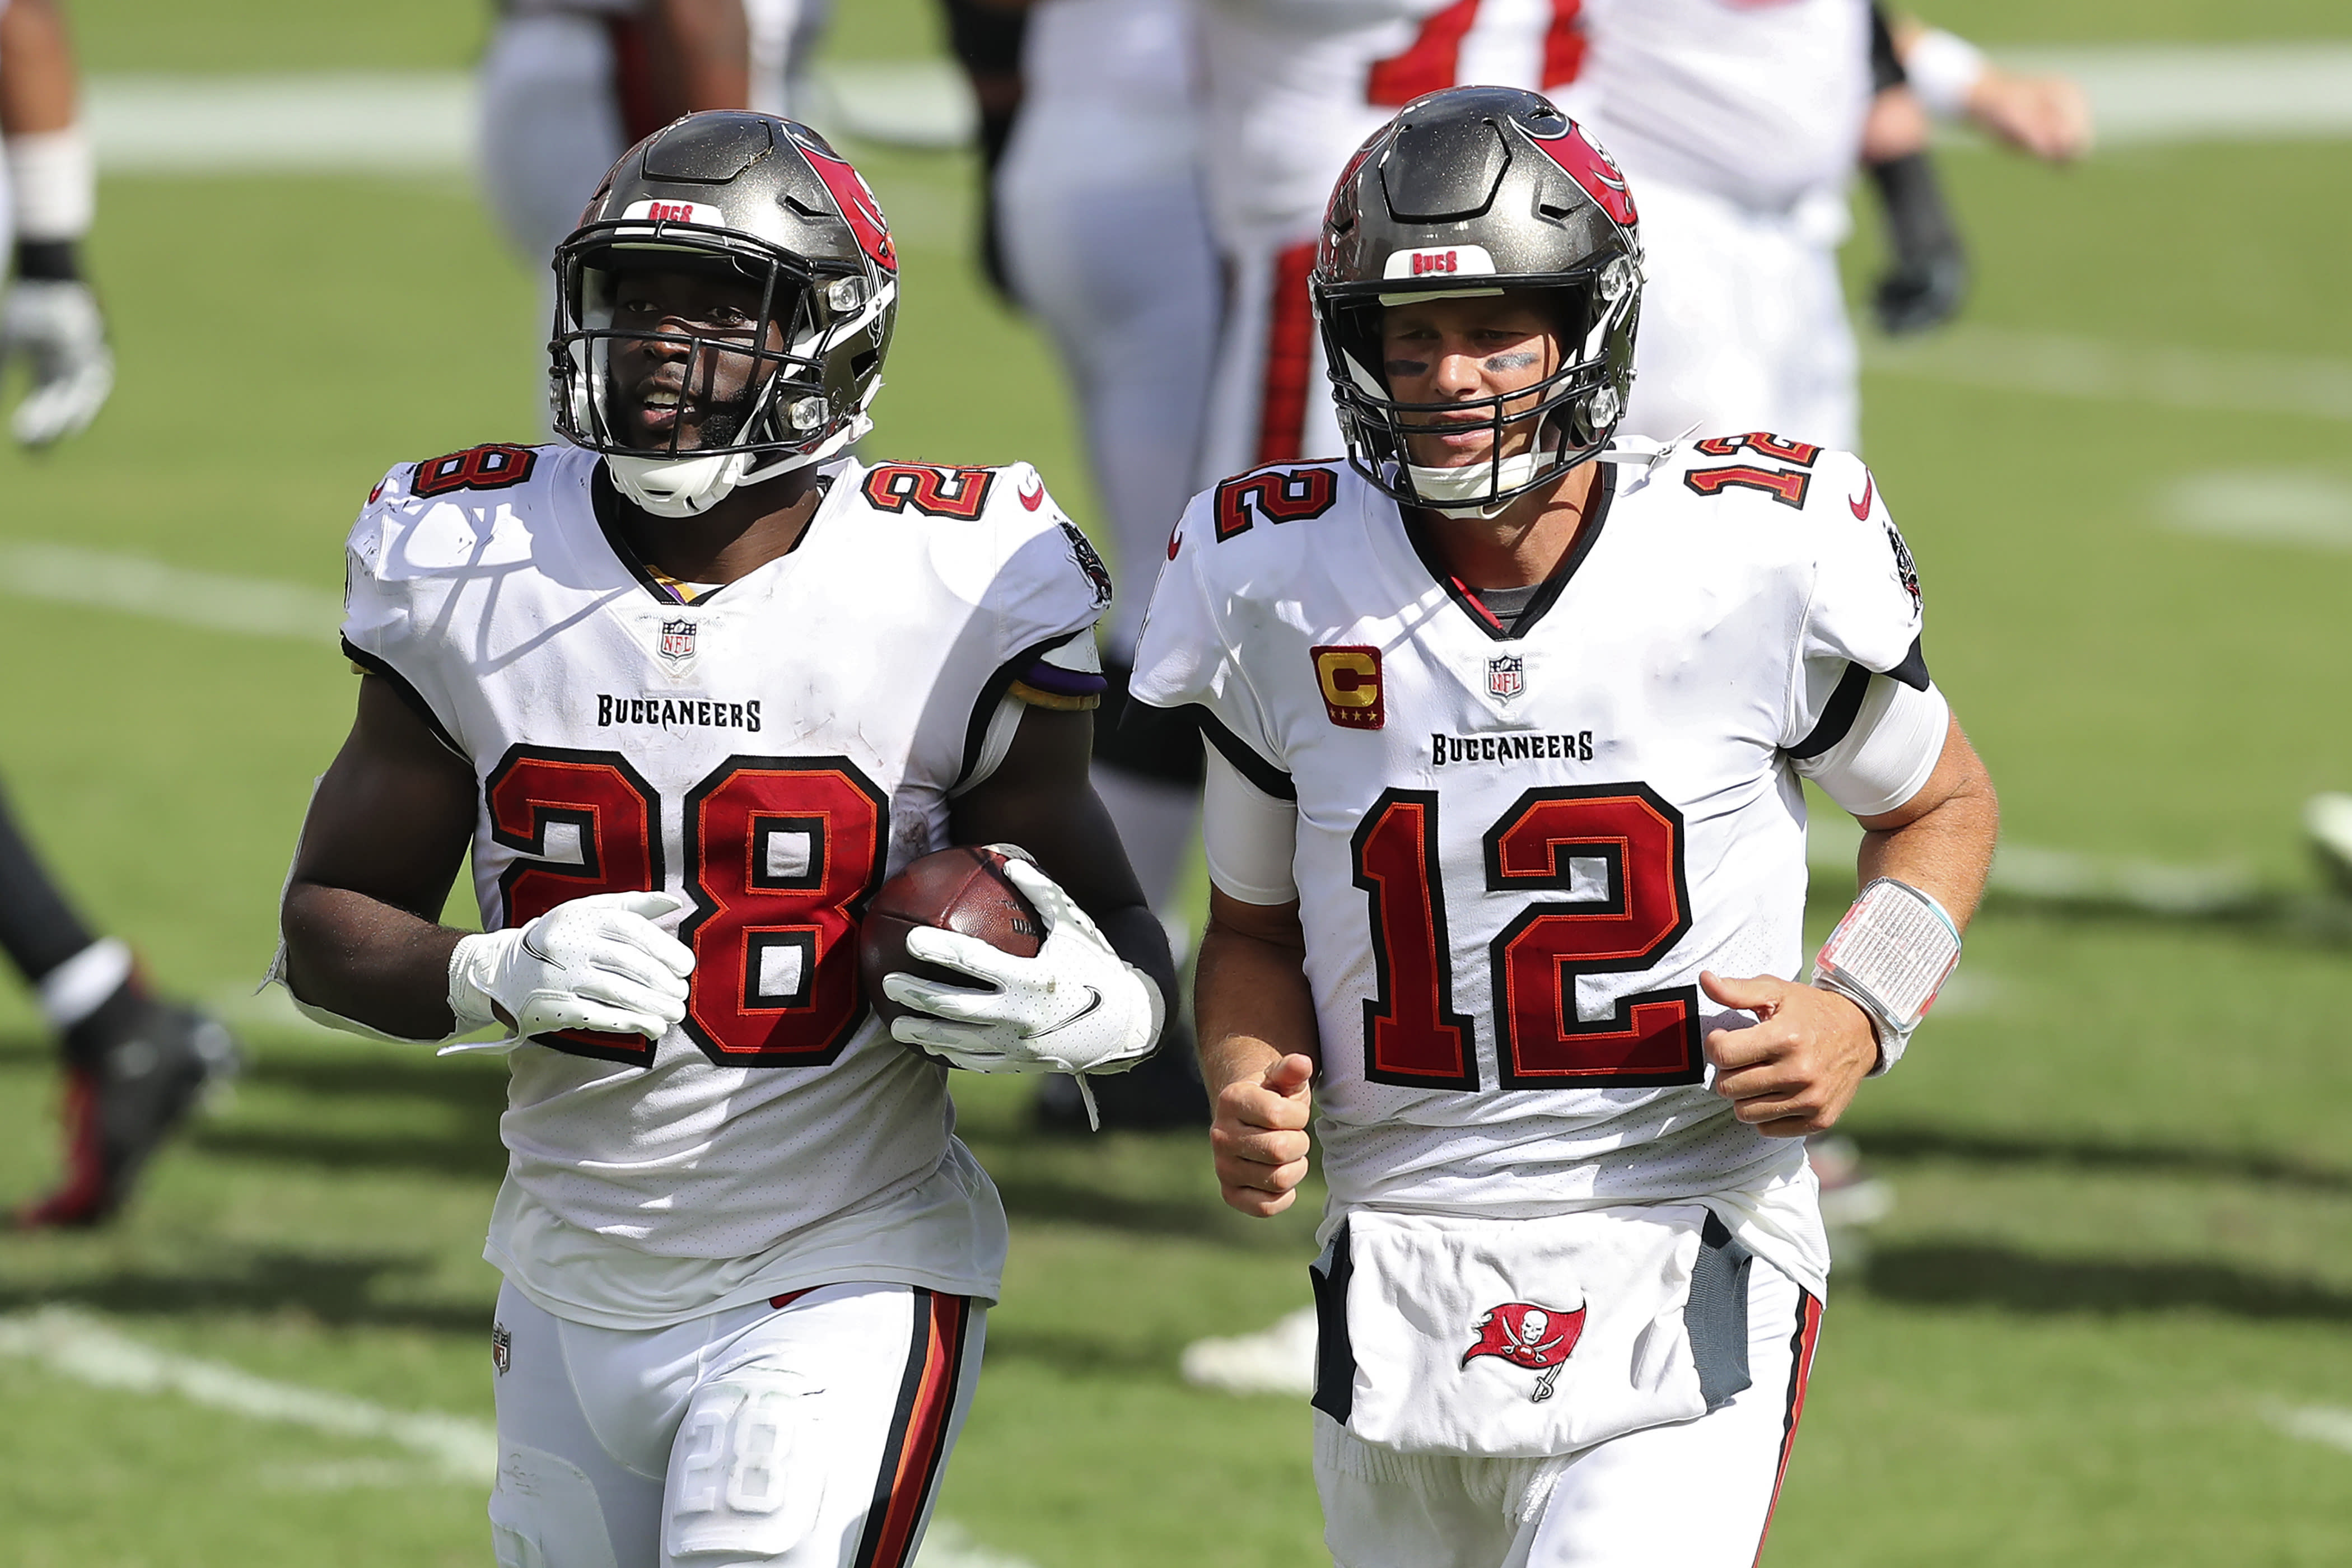 Tampa Bay Buccaneers running back Leonard Fournette (28) runs off the field with quarterback Tom Brady (12) after Fournette ran 46-yards for a score against the Carolina Panthers during the second half of an NFL football game Sunday, Sept. 20, 2020, in Tampa, Fla. (AP Photo/Mark LoMoglio)